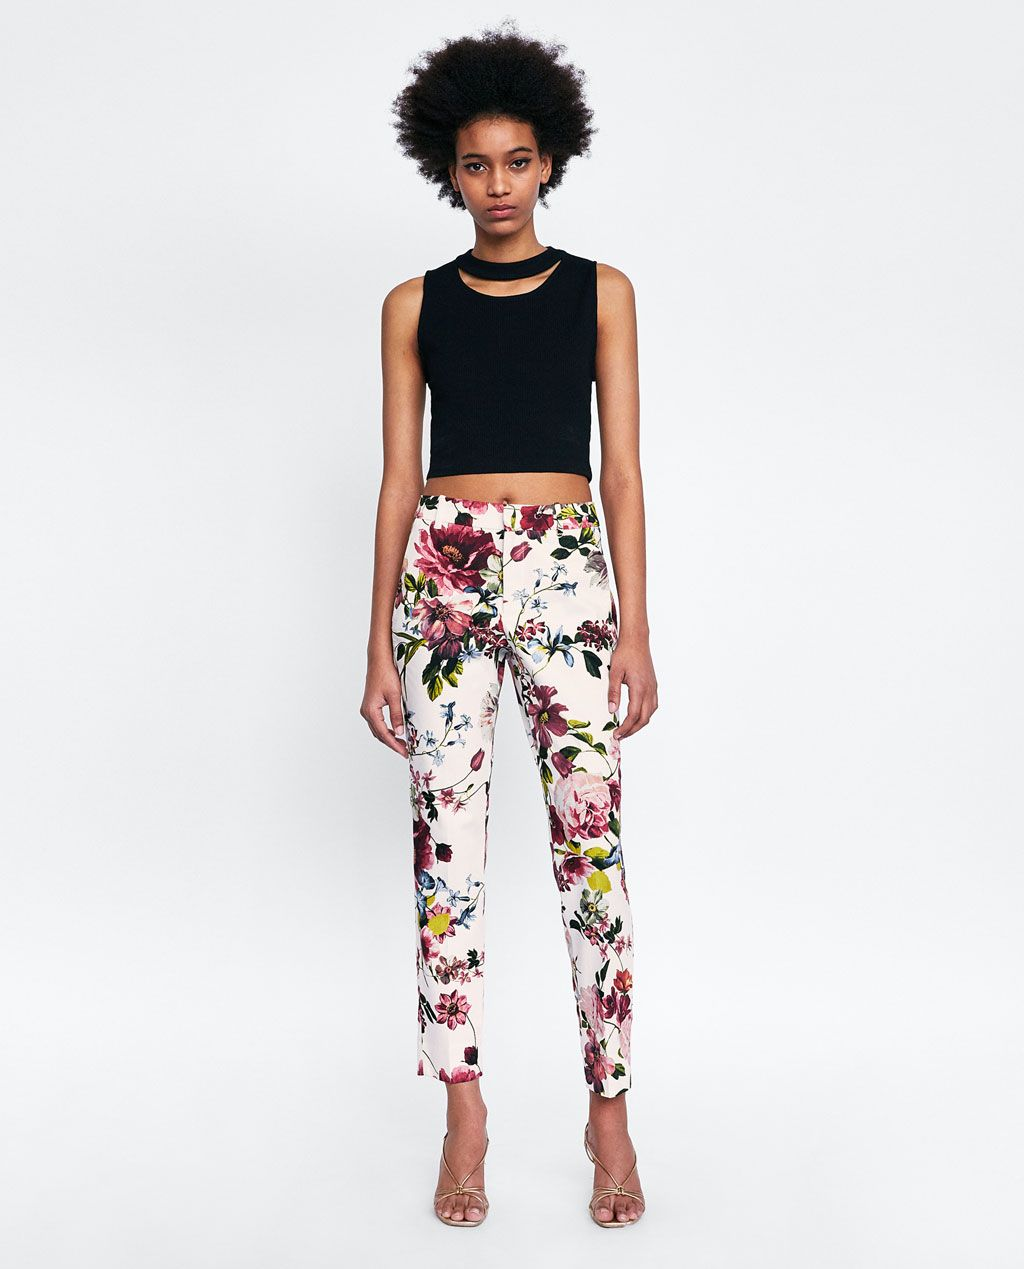 817deec3 Image 1 of FLORAL PRINT CHINO PANTS from Zara | young queer ...